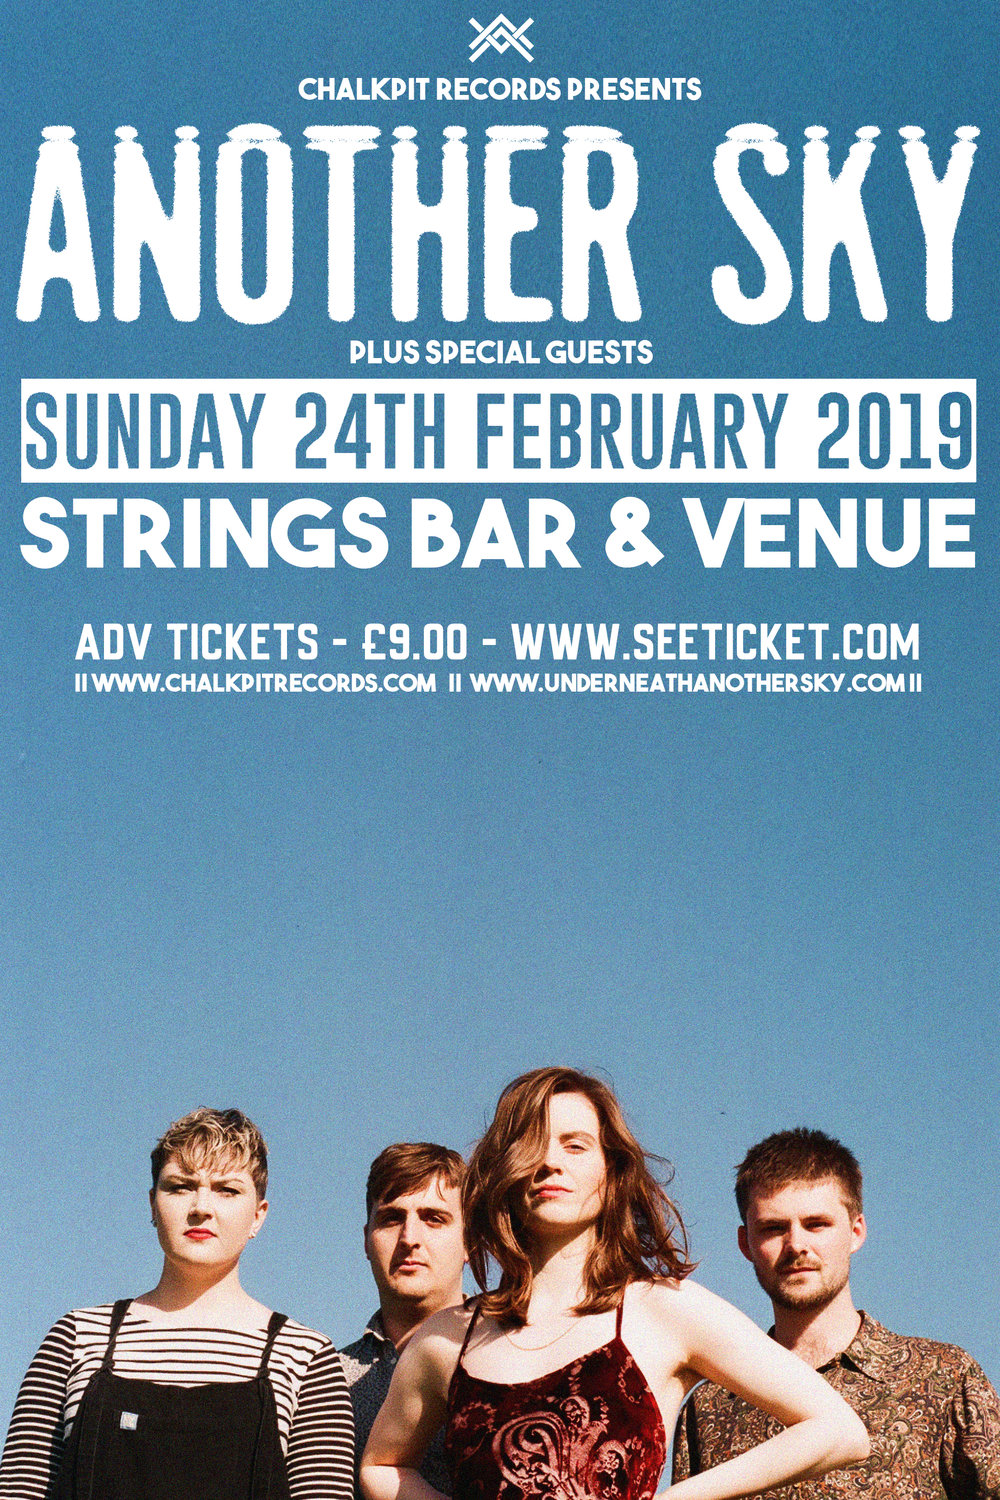 Another Sky - Tickets on Sale Now